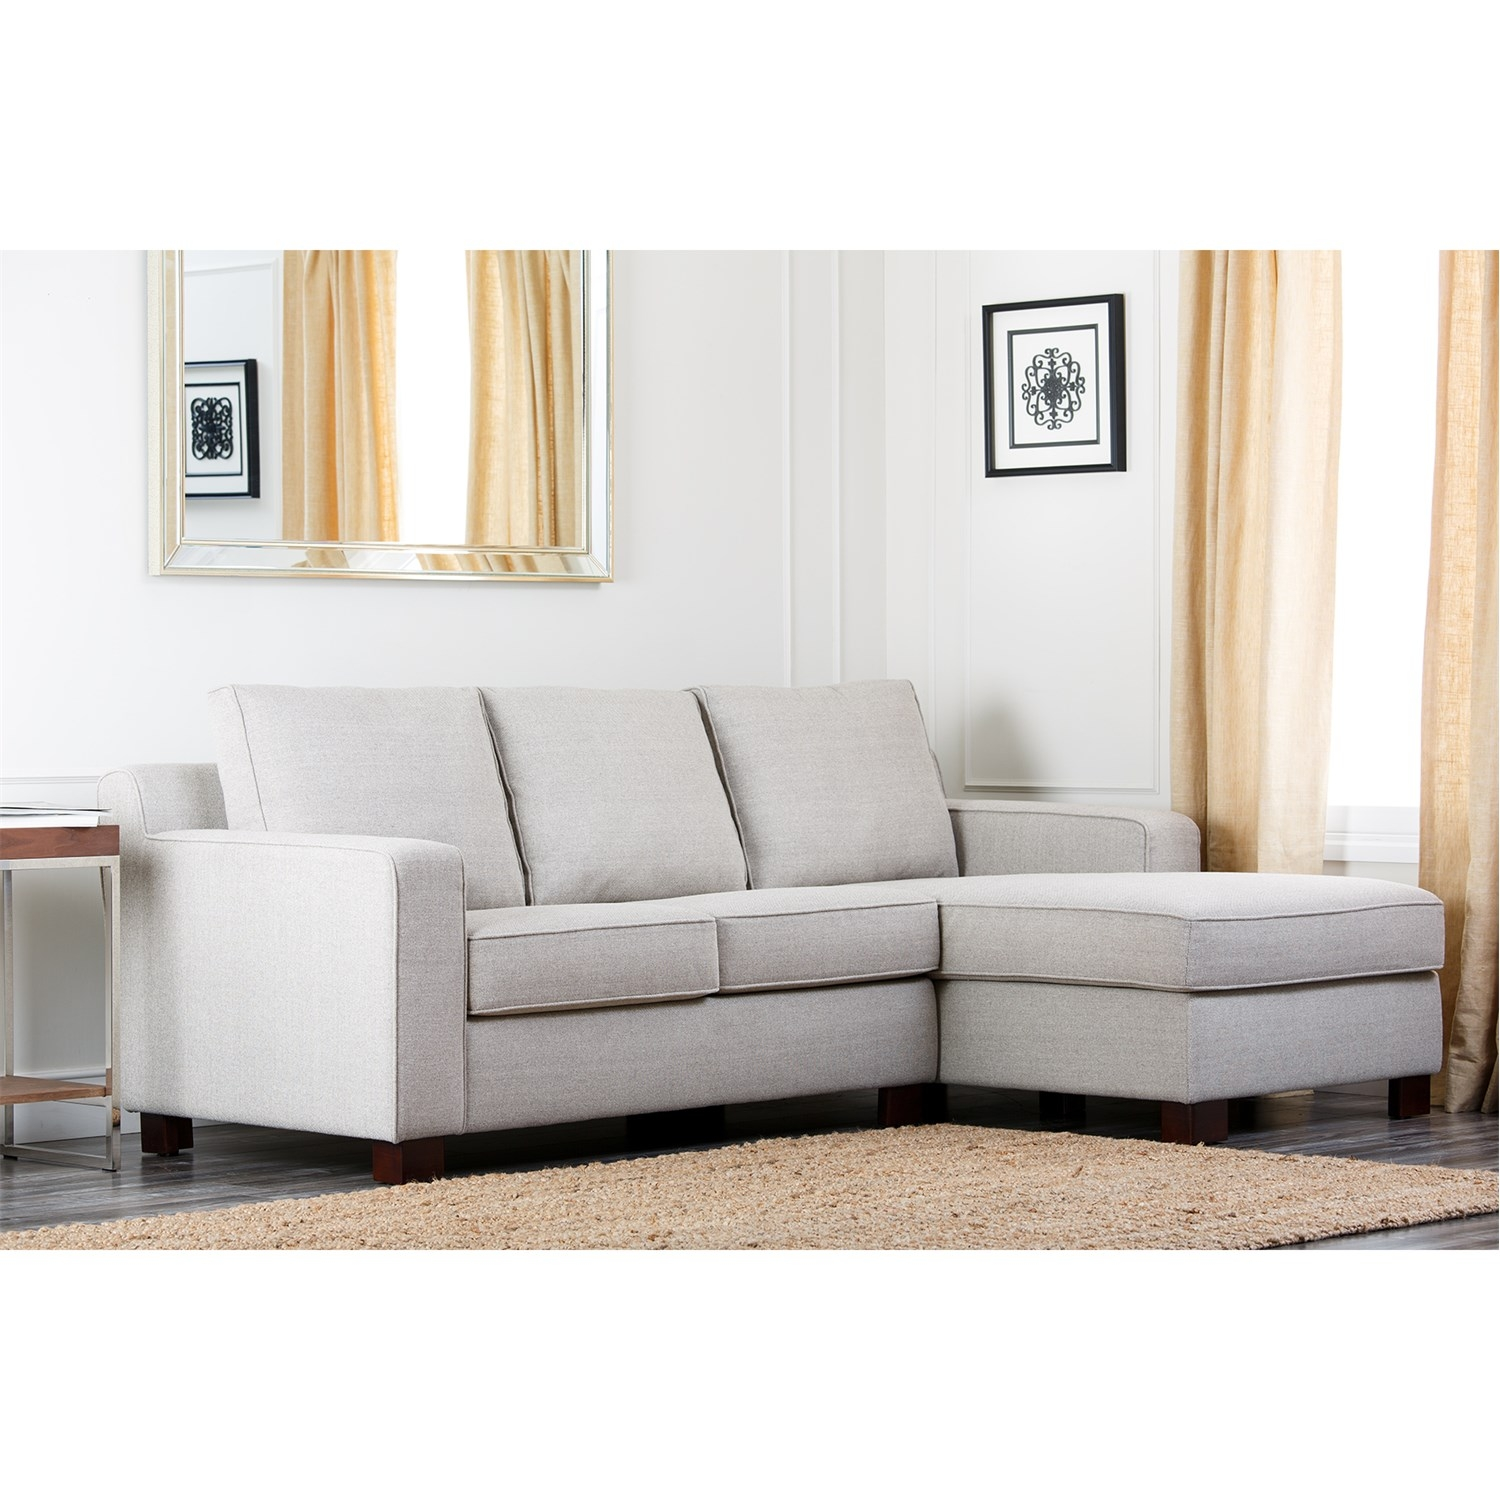 Abson Living Rl 1321 Gry Regina Grey Fabric Sectional Sofa Intended For Abbyson Sectional Sofa (Image 4 of 15)